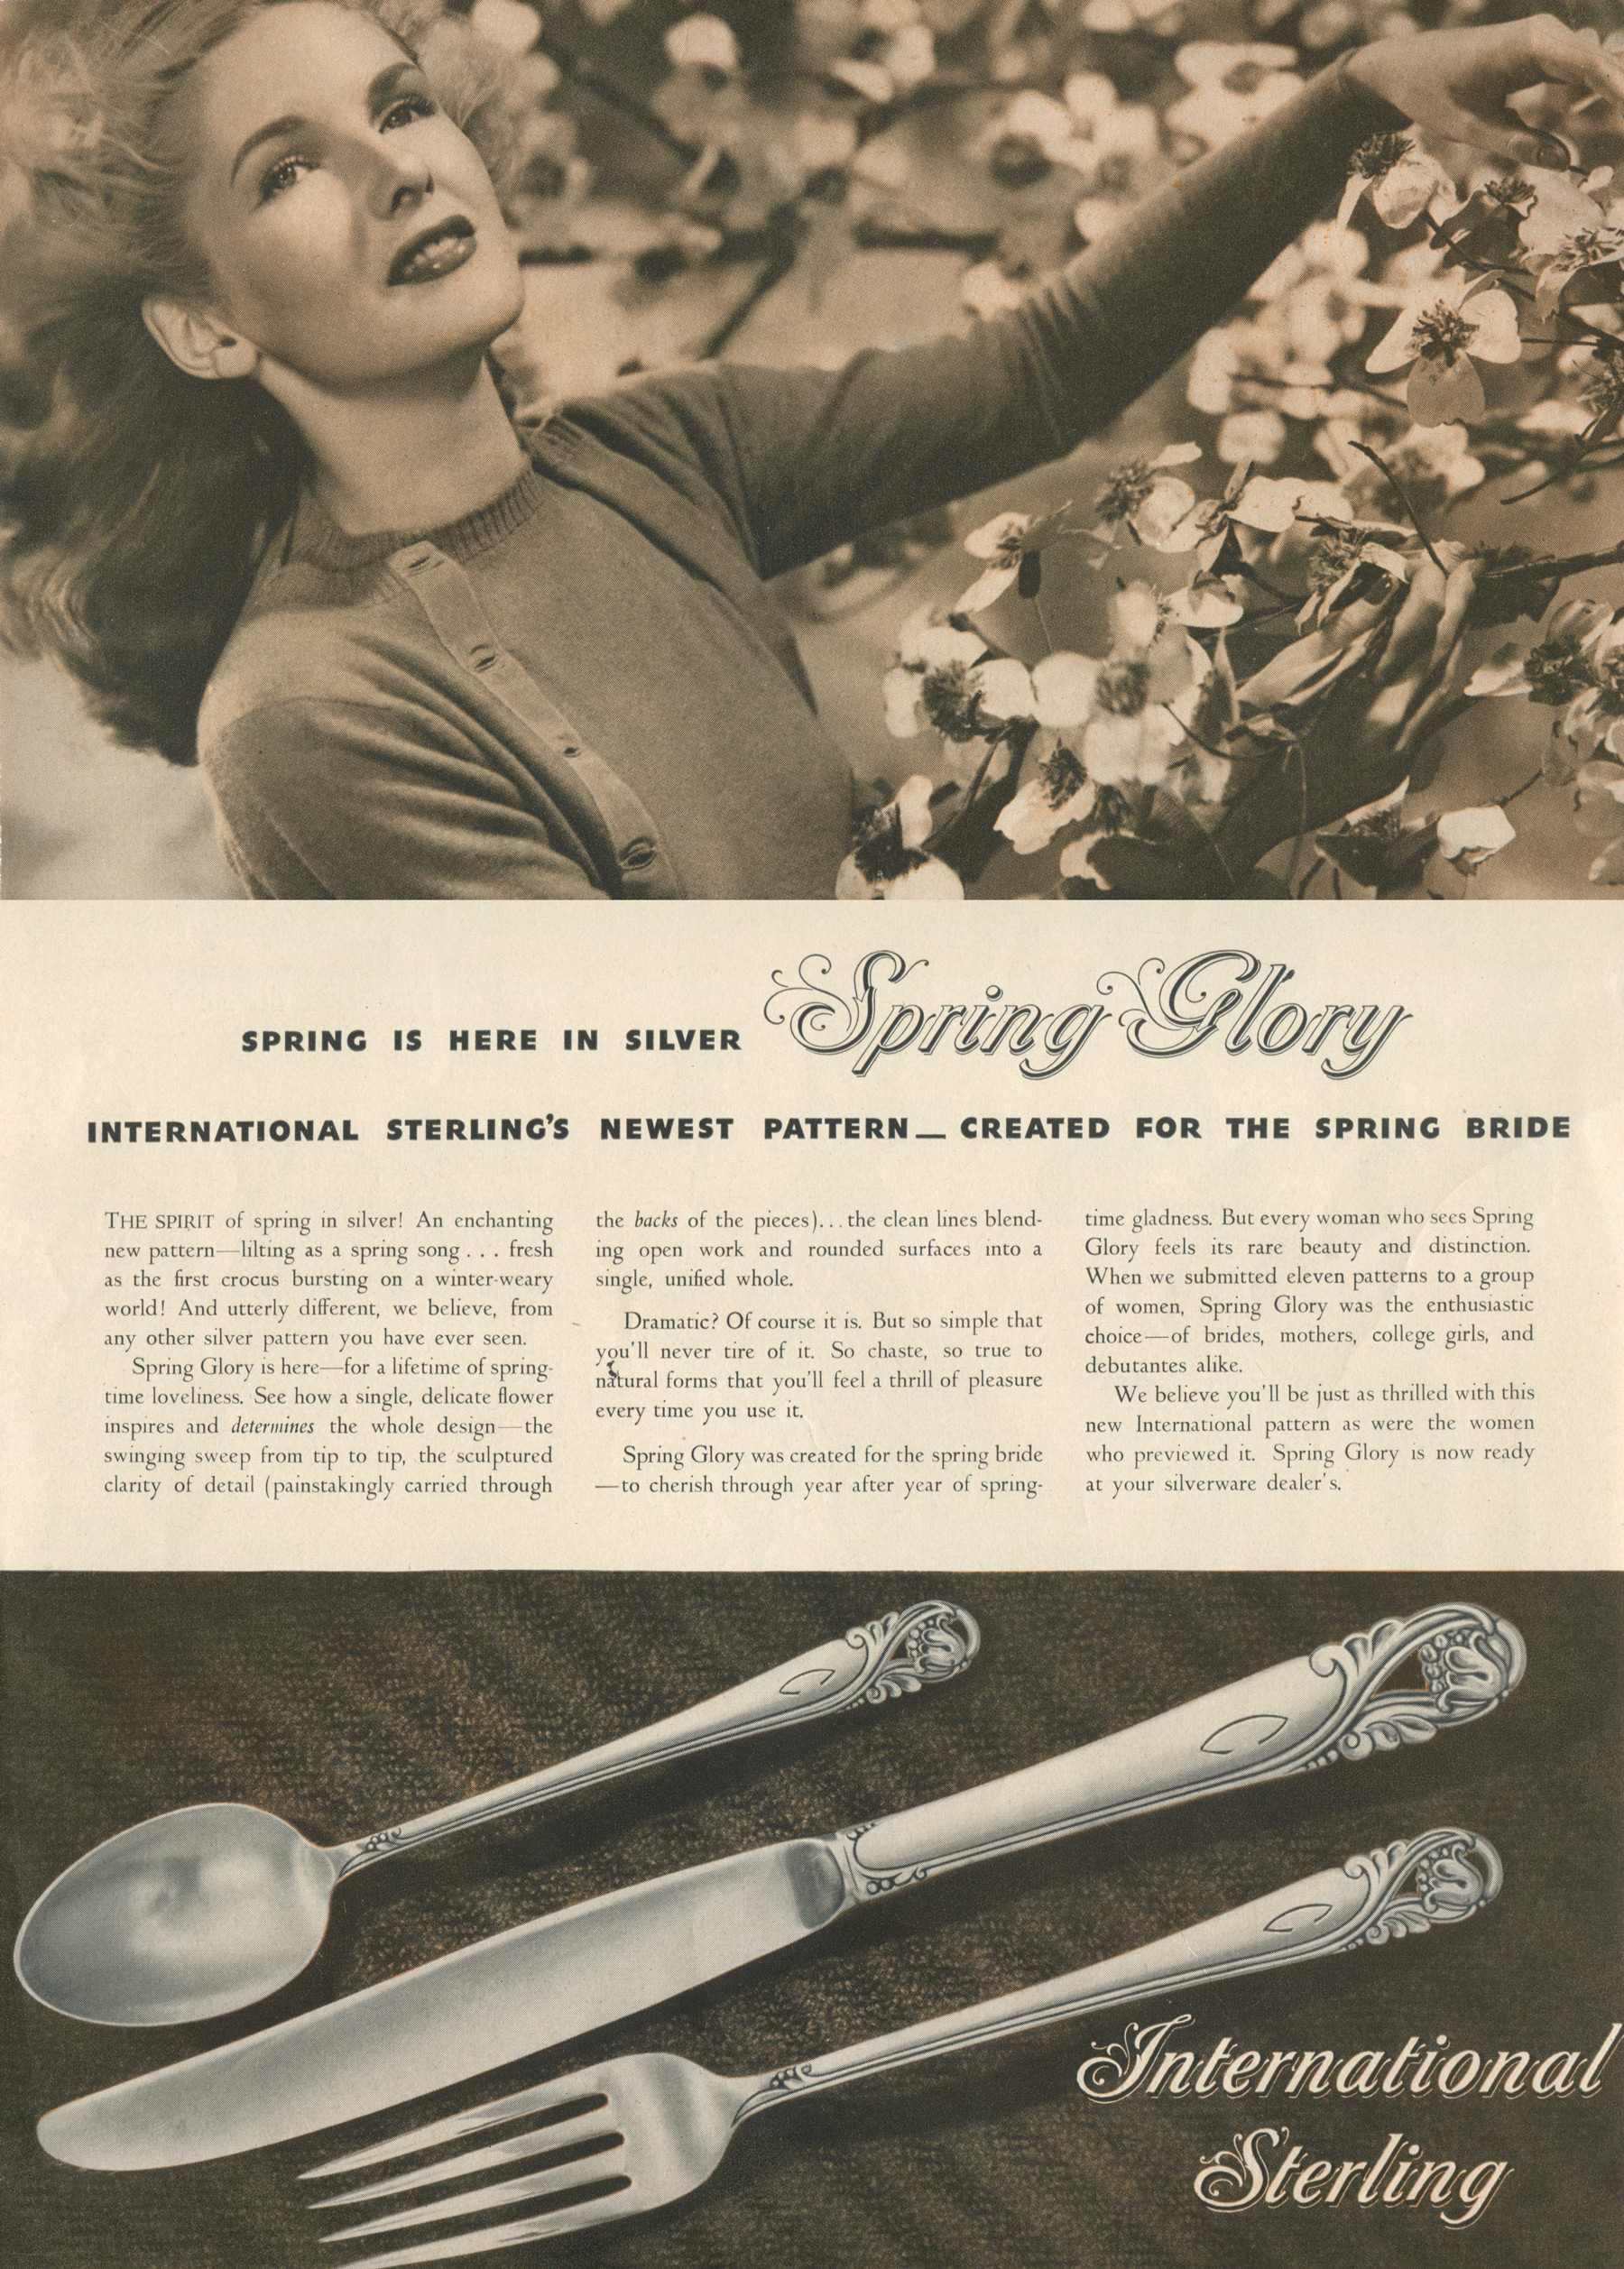 Spring Glory Print Ad 1940s Silver